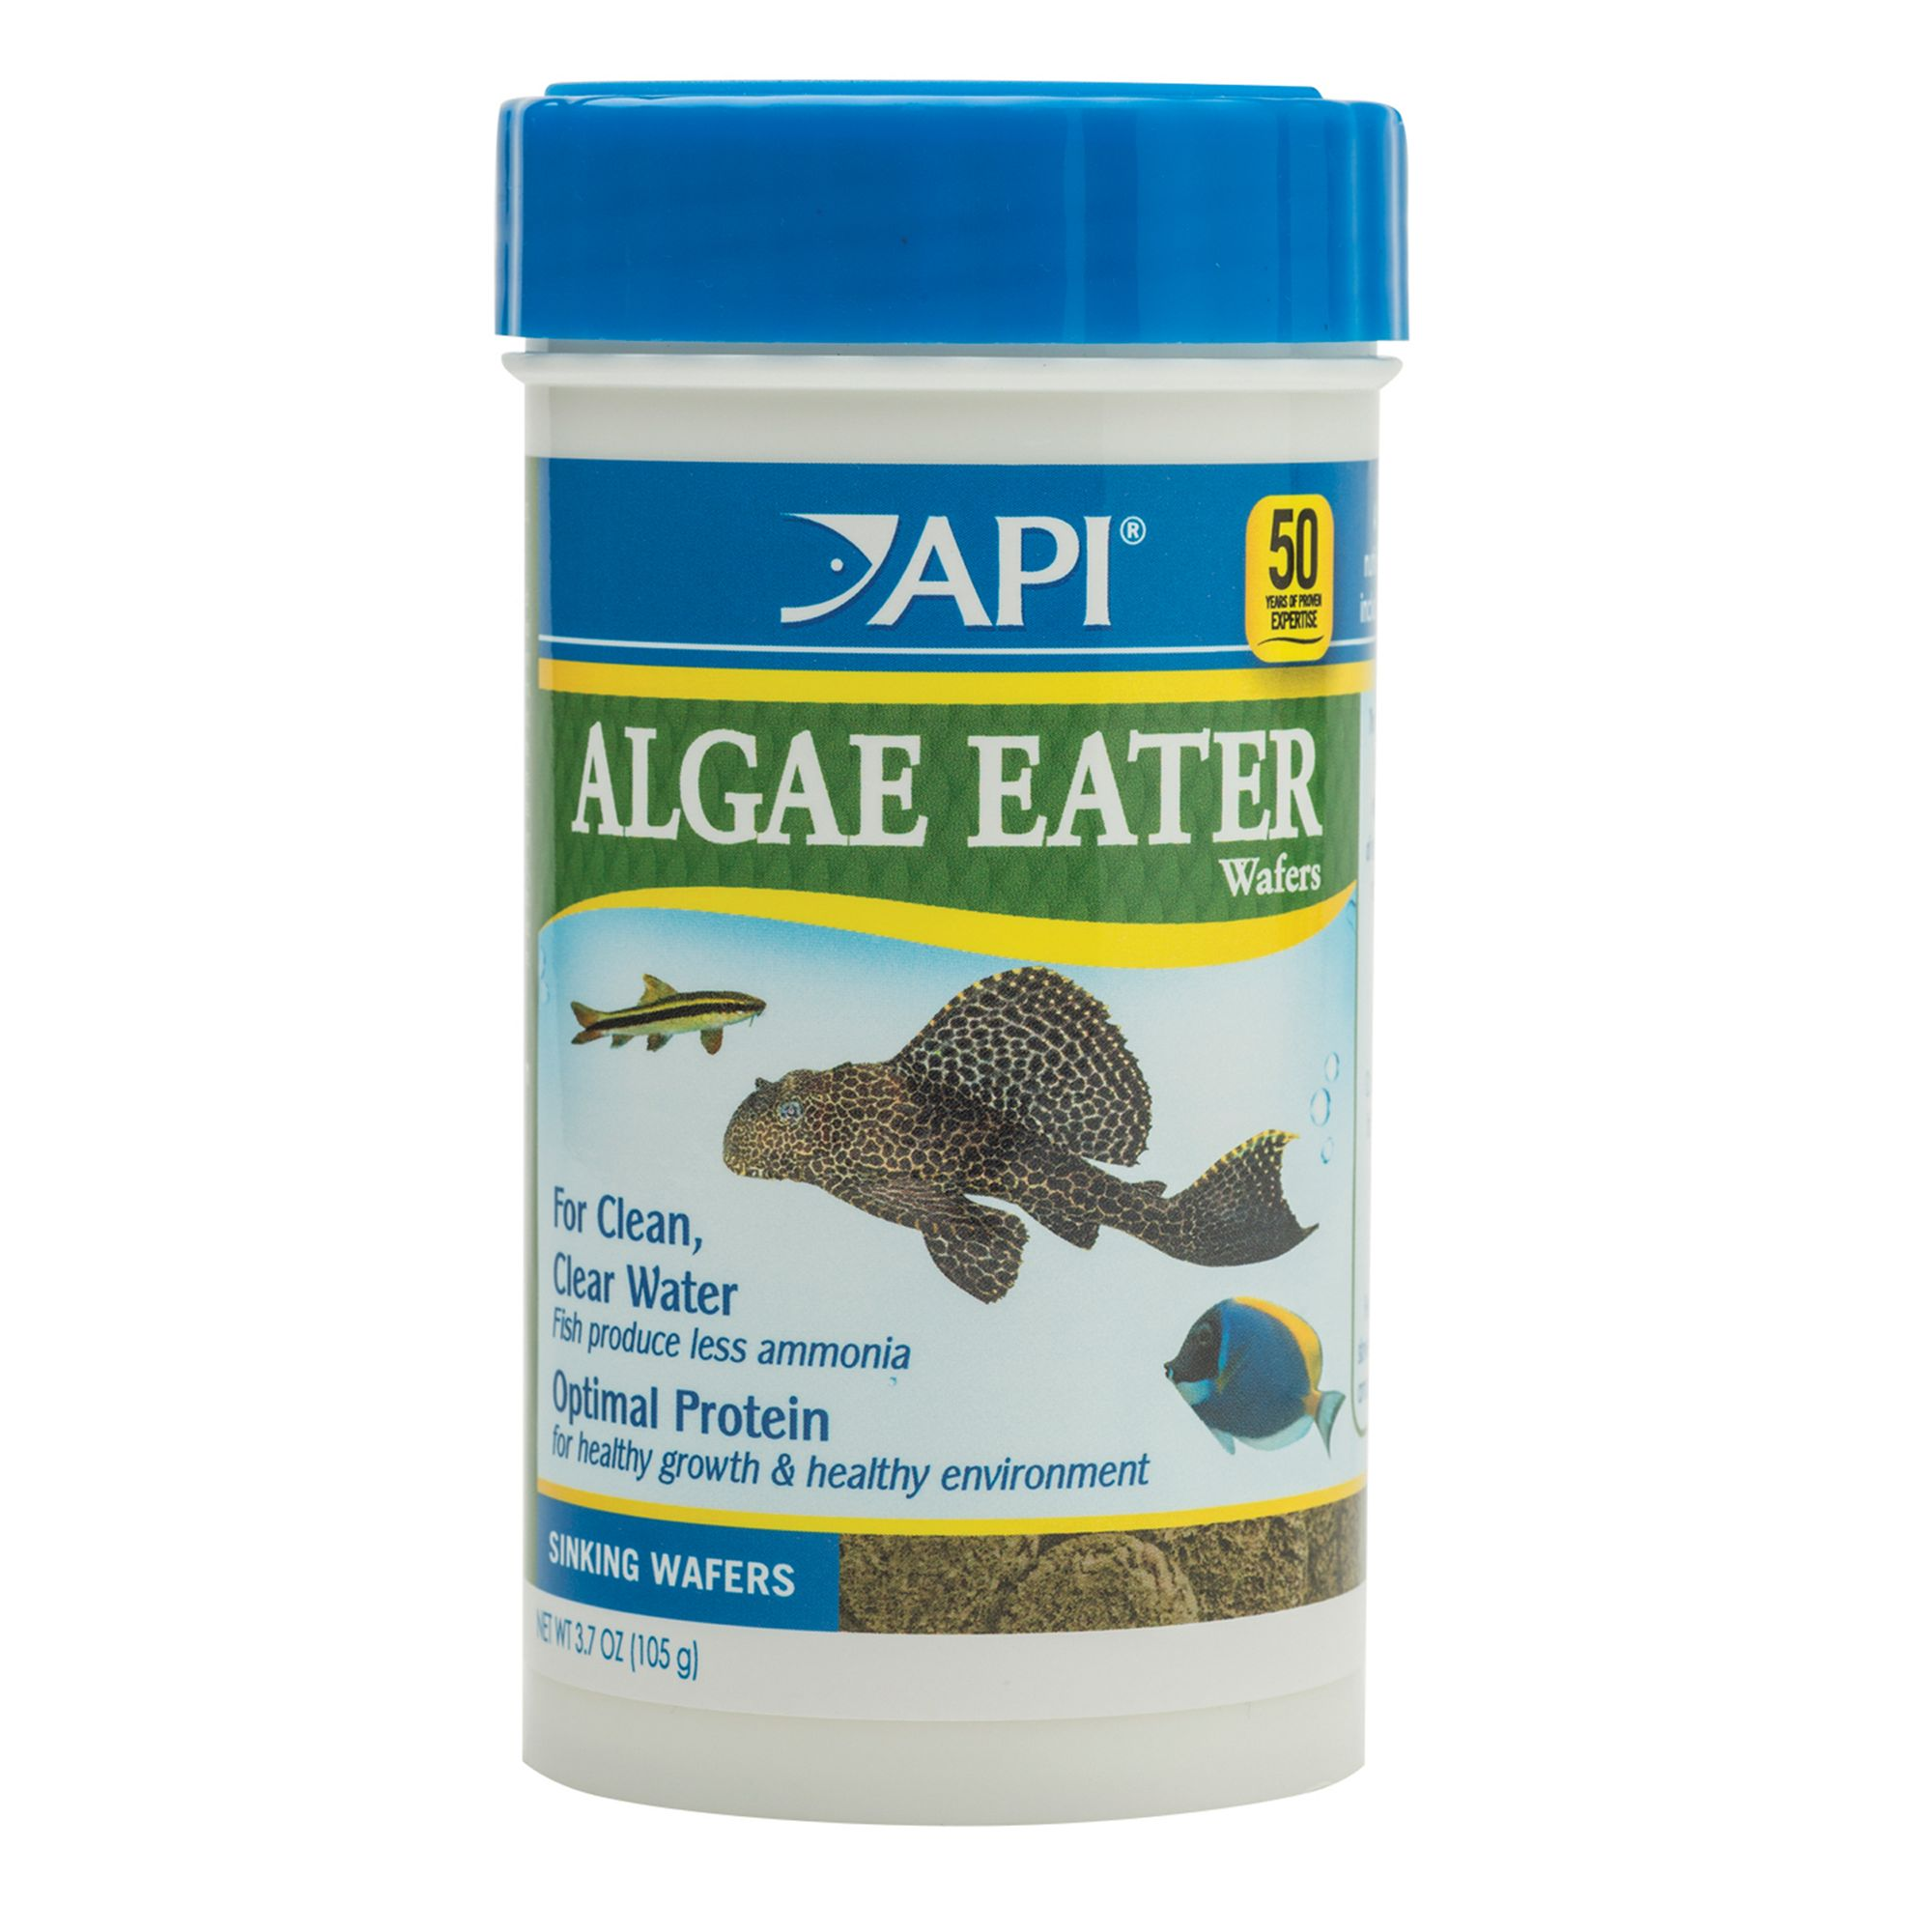 Api Algae Eater Premium Algae Wafers Fish Food